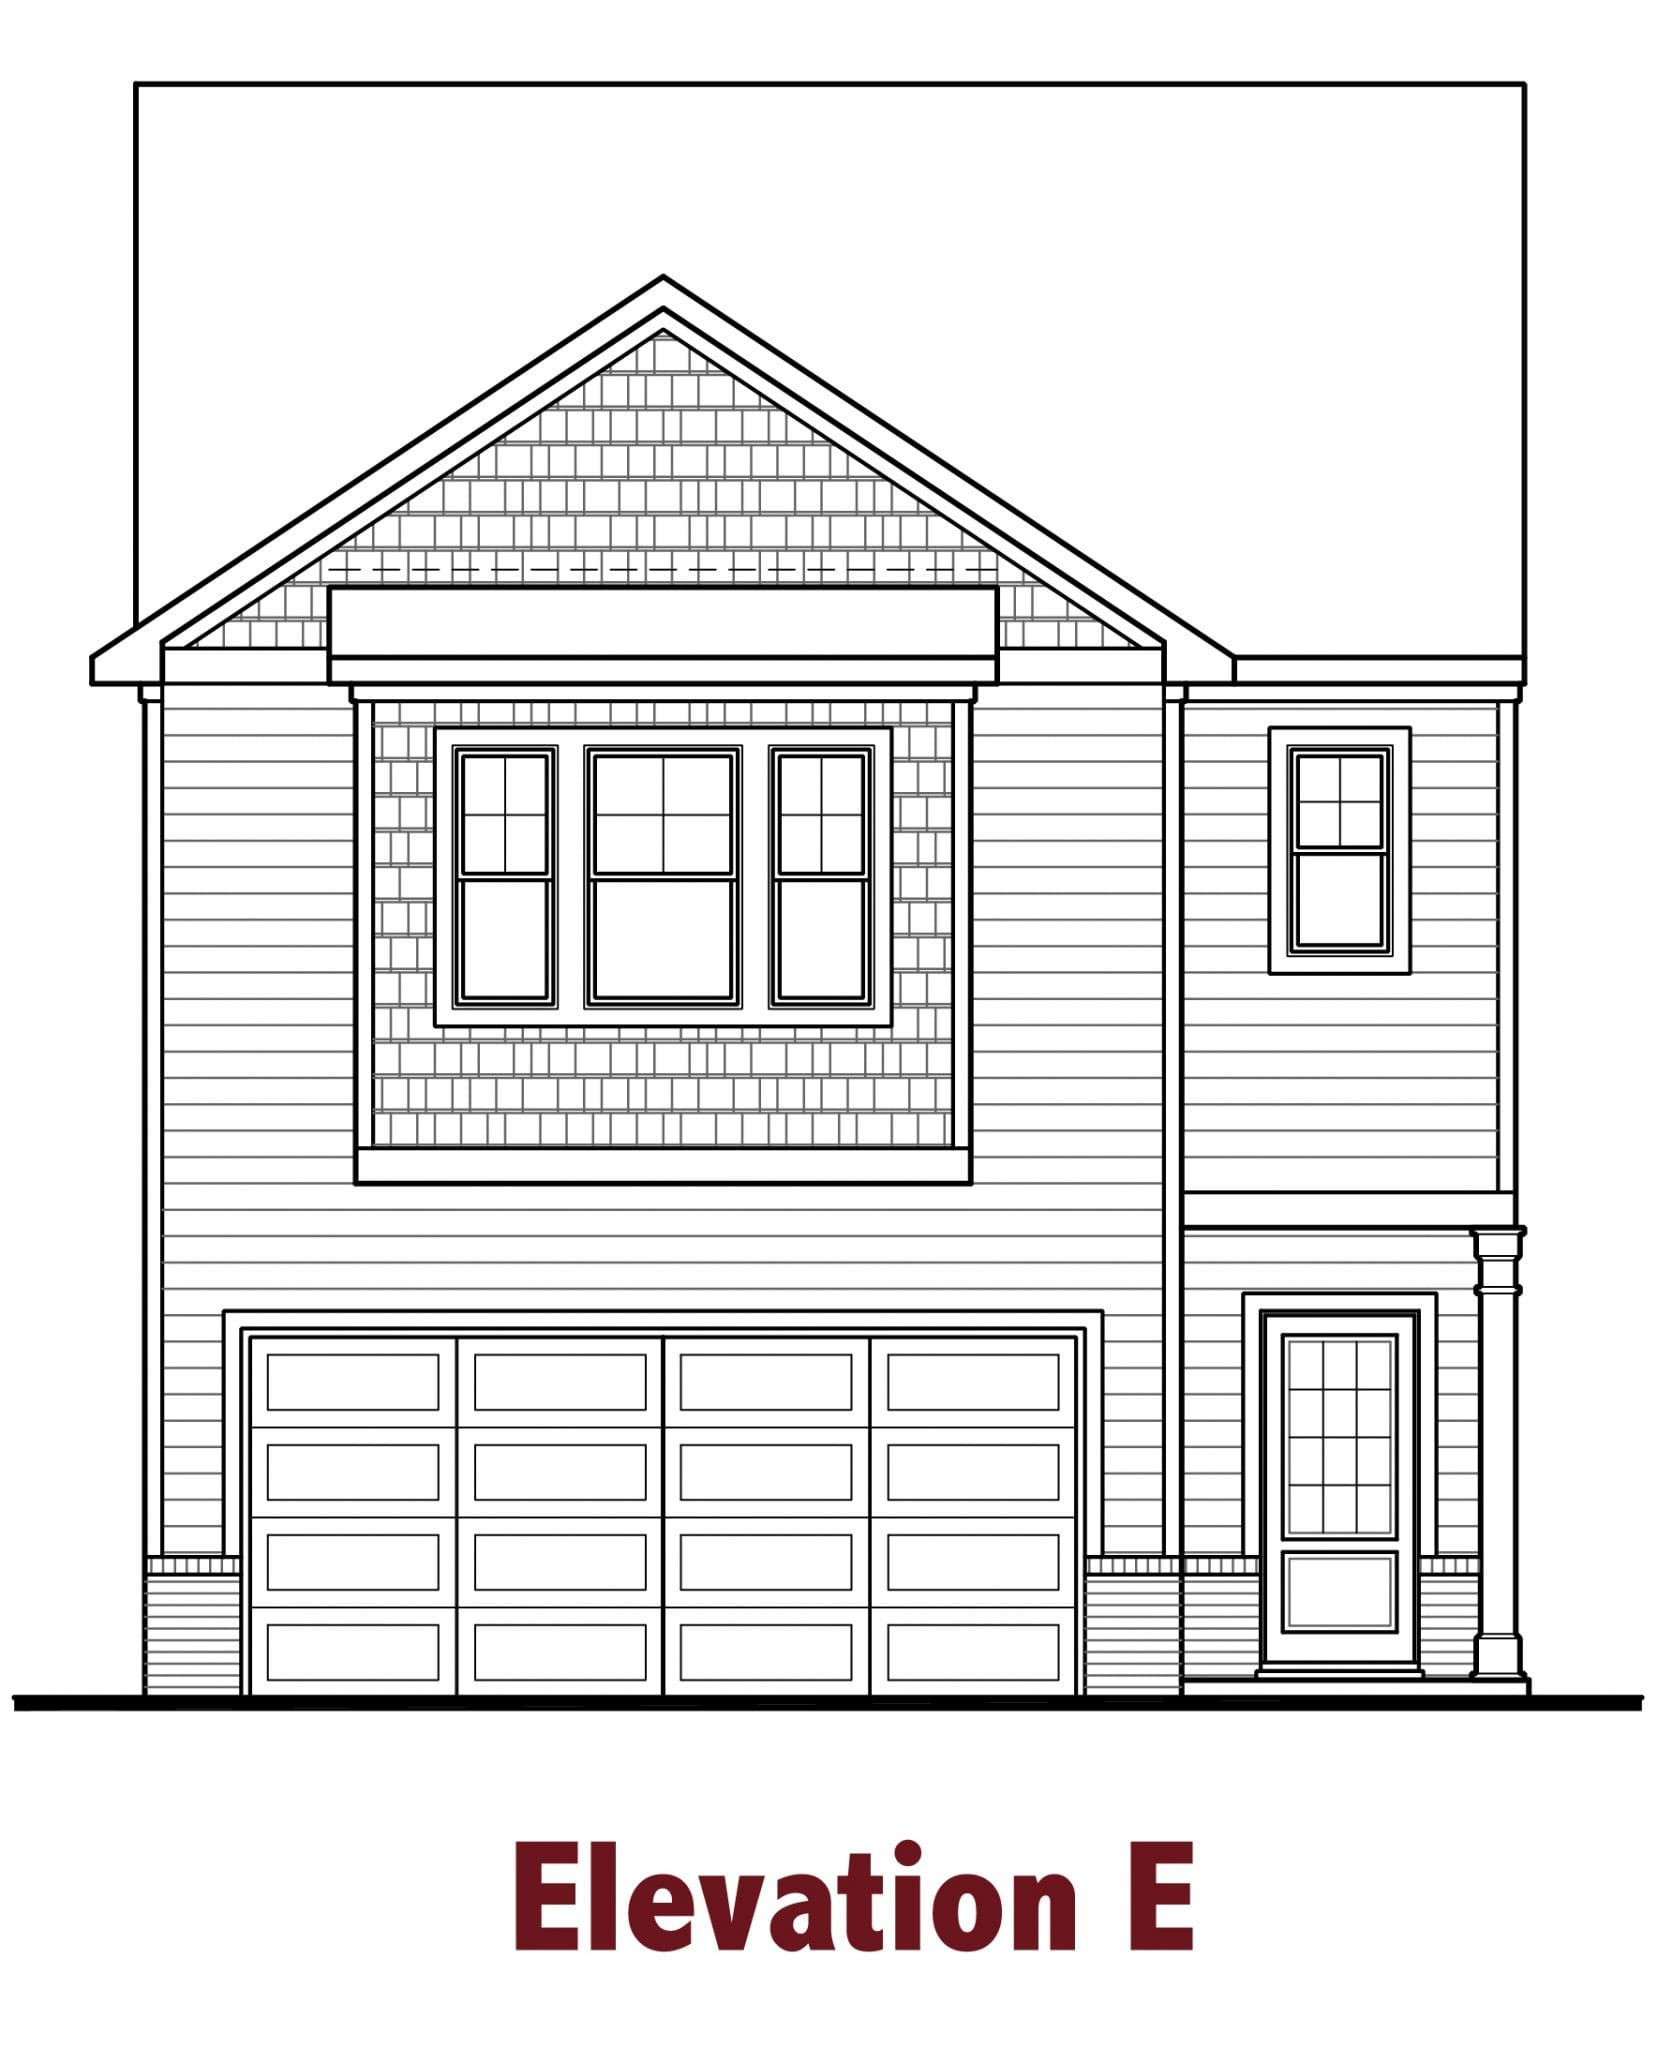 Davenport elevations Image